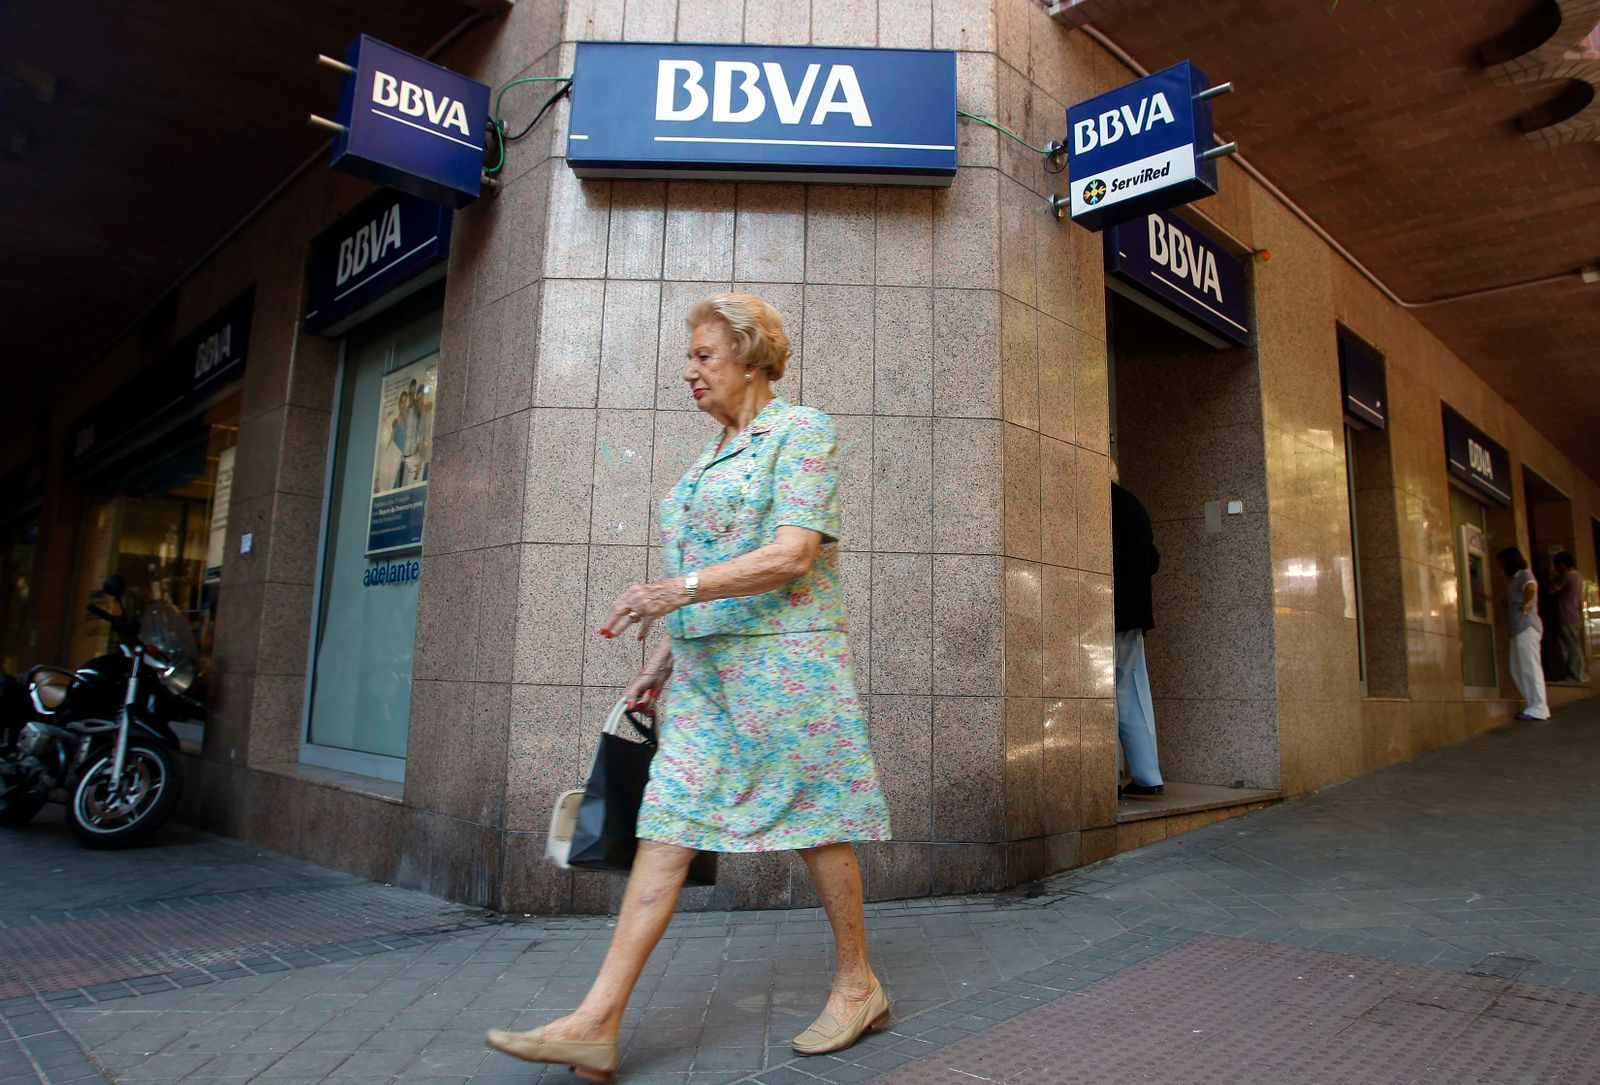 Woman walks past a BBVA bank in downtown Madrid